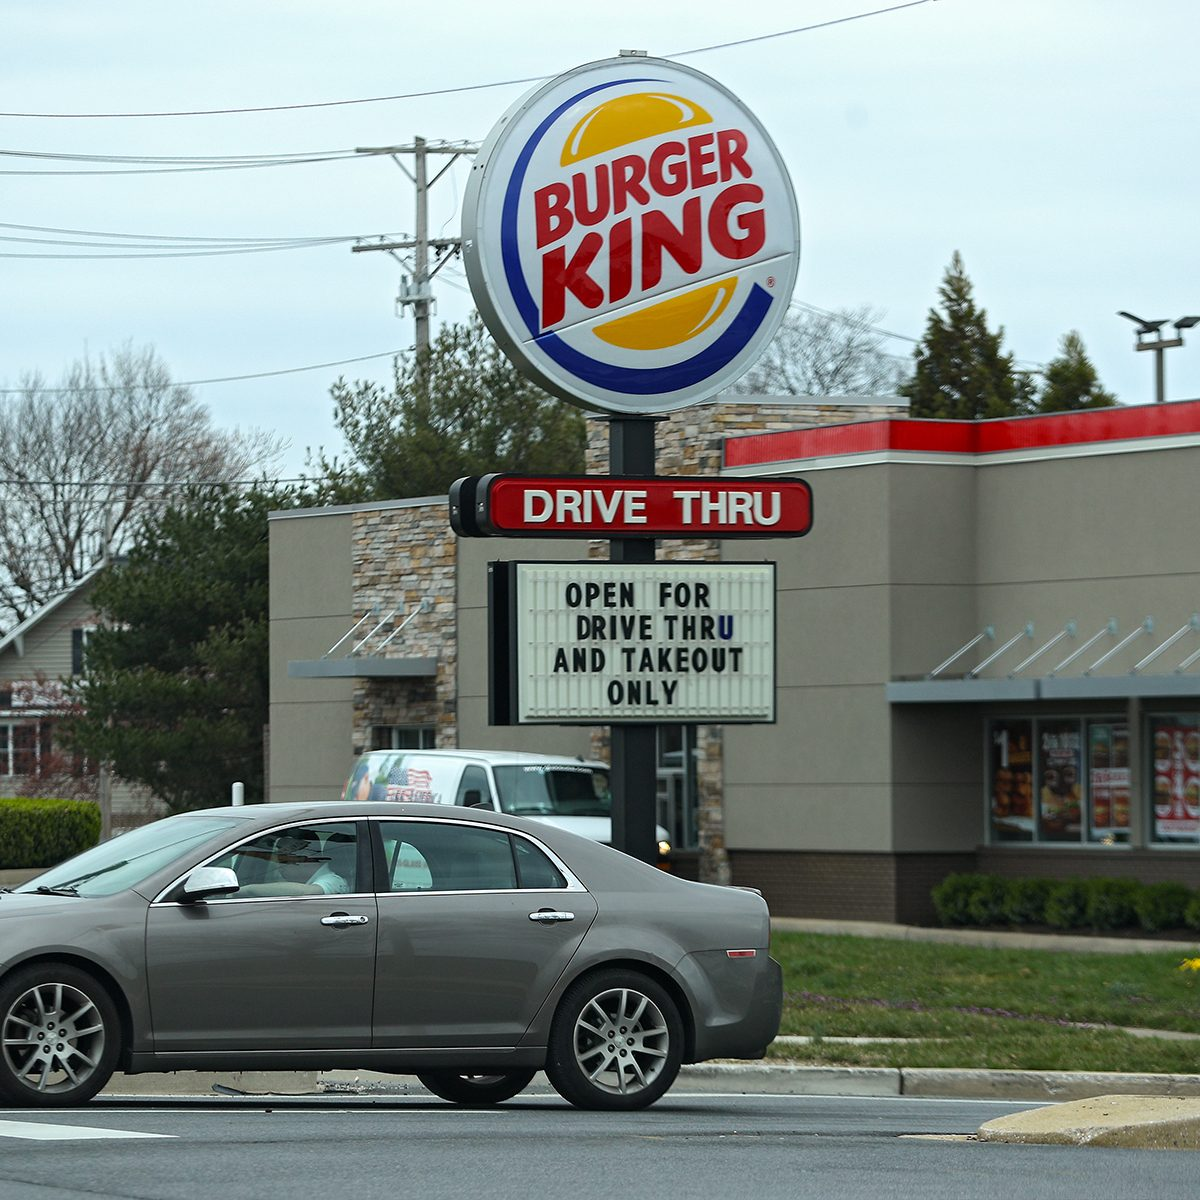 MOUNT AIRY, MARYLAND - MARCH 18: A Burger King restaurant displays a sign reading 'Open for Drive Thru and Takeout Only' amid the coronavirus outbreak on March 18, 2020 in Mount Airy, Maryland. Maryland Gov. Larry Hogan ordered the closure of bars and restaurants, in an effort to slow the spread of the COVID-19 pandemic. (Photo by Patrick Smith/Getty Images)